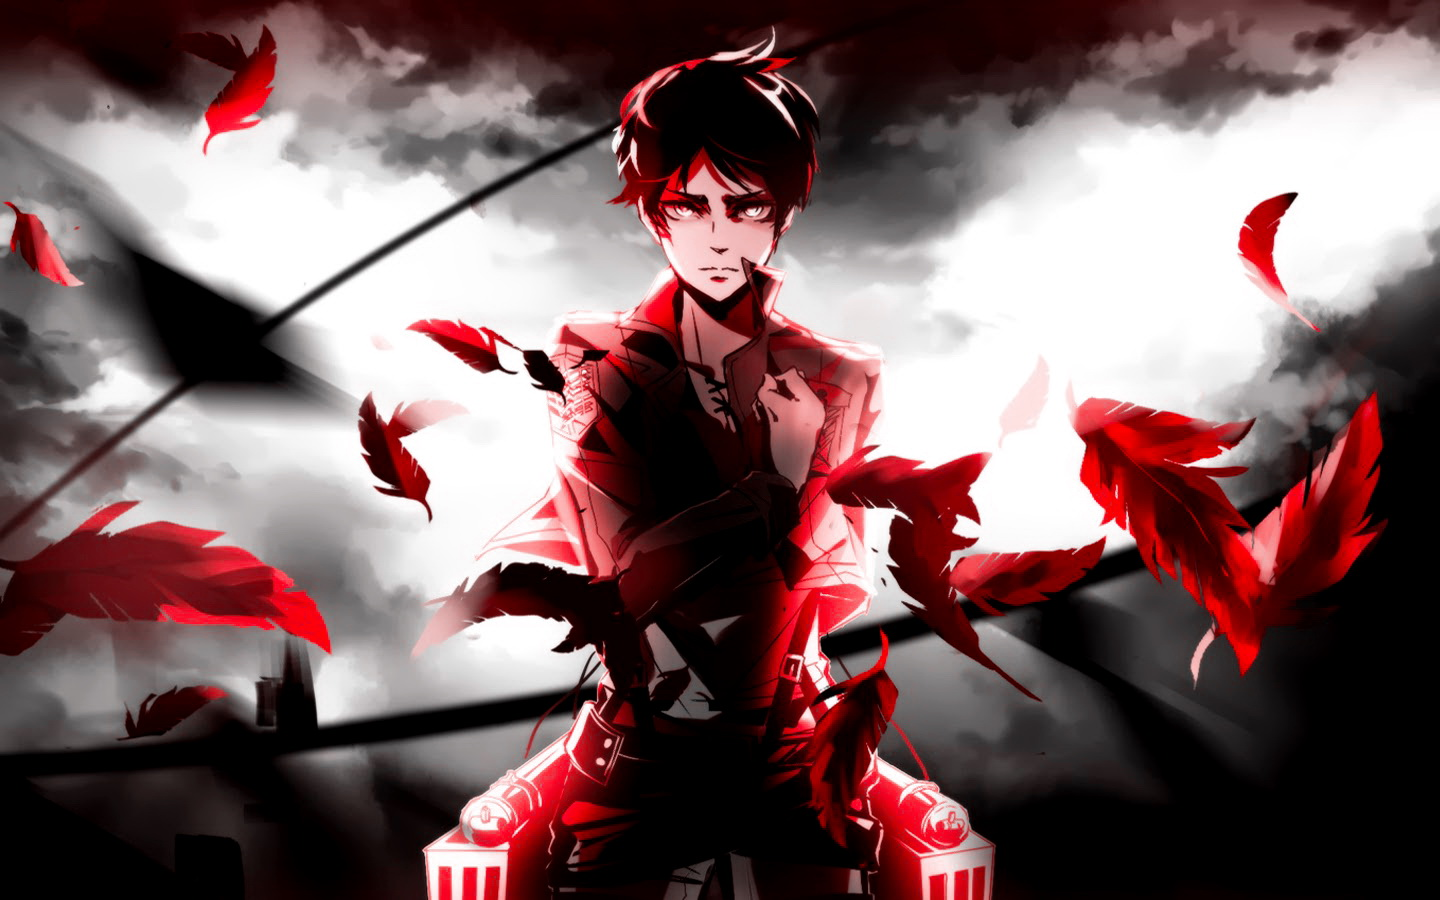 https://www.uplooder.net/img/image/31/ad585ff98d7361088b71314fa572a8f3/eren-jaeger-attack-on-titan-shingeki-no-kyojin-wallpaper-hd-anime-male-weapon.jpg